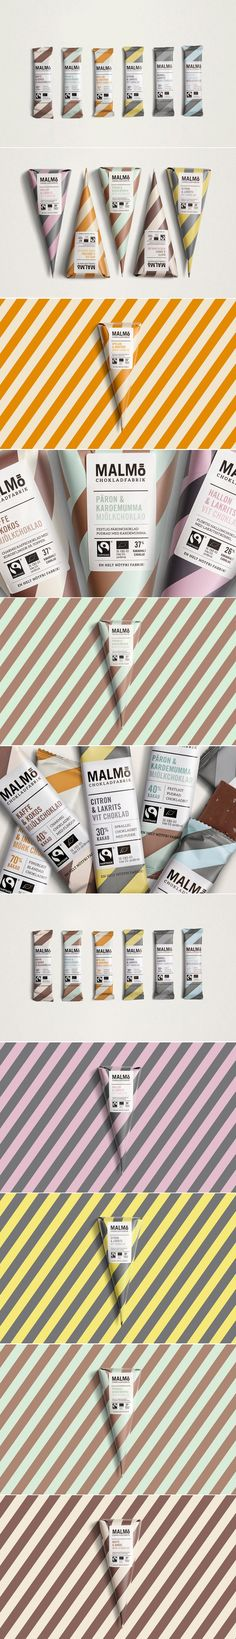 This Swedish Favorite Gets a Striking New Look — The Dieline | Packaging & Branding Design & Innovation News